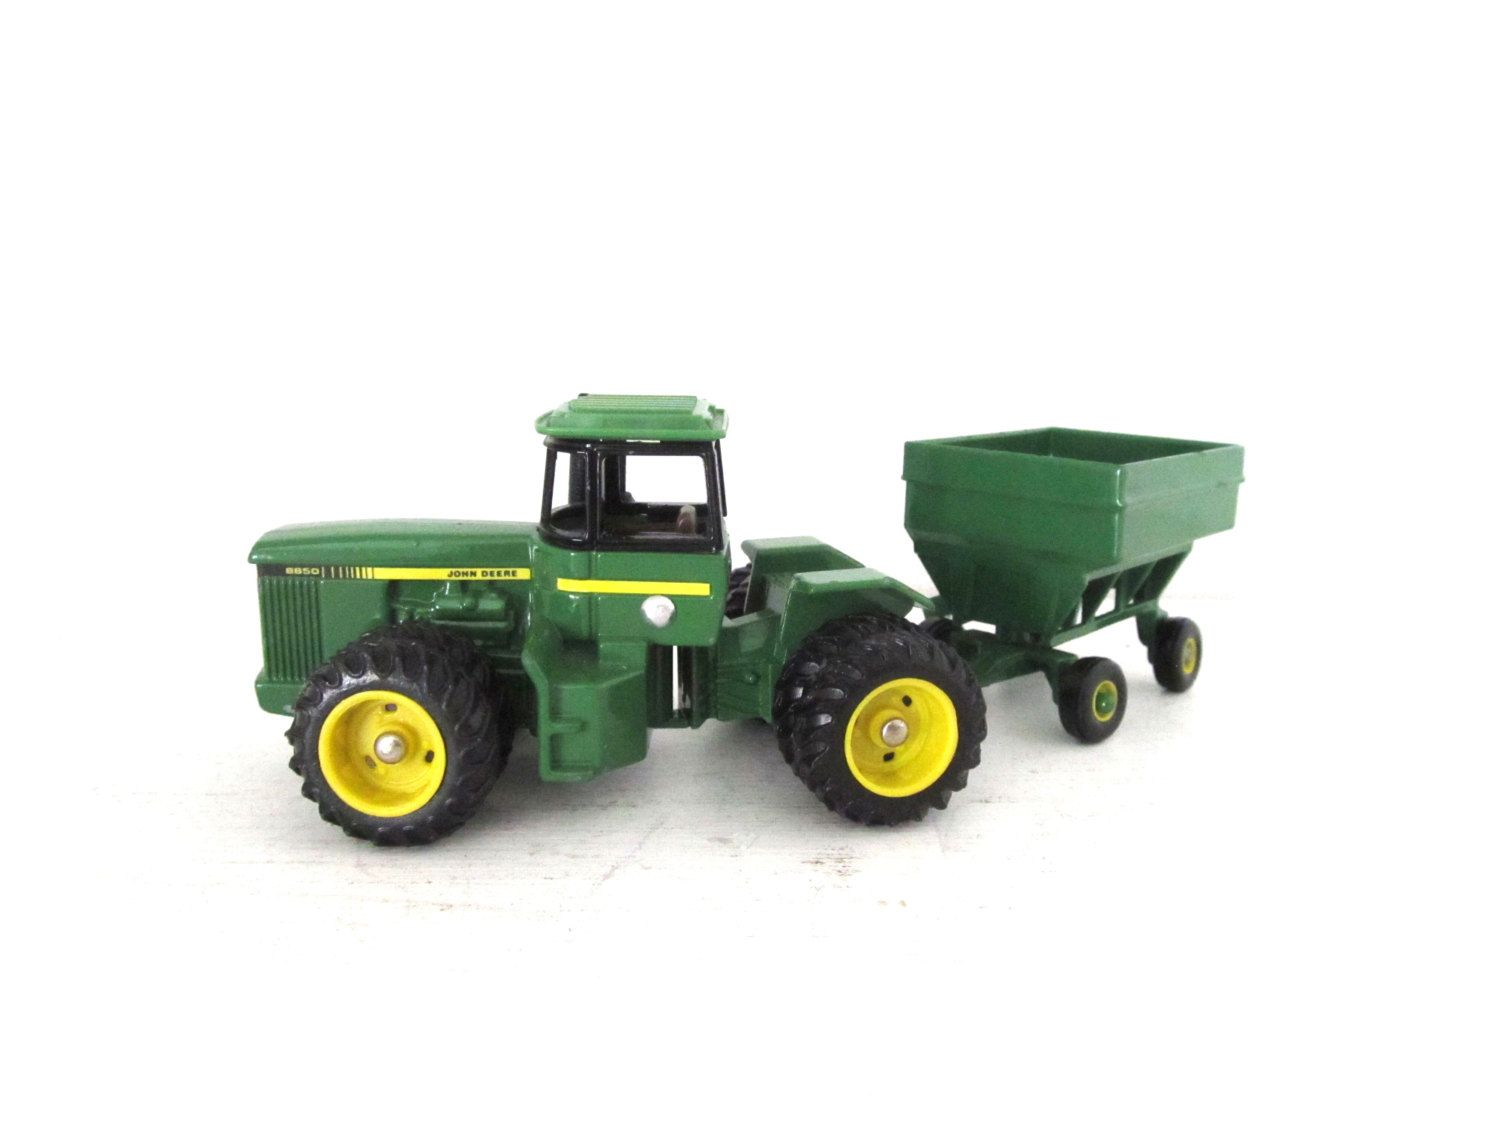 Vintage John Deere Toy Metal Tractor And Gravity Grain Wagon